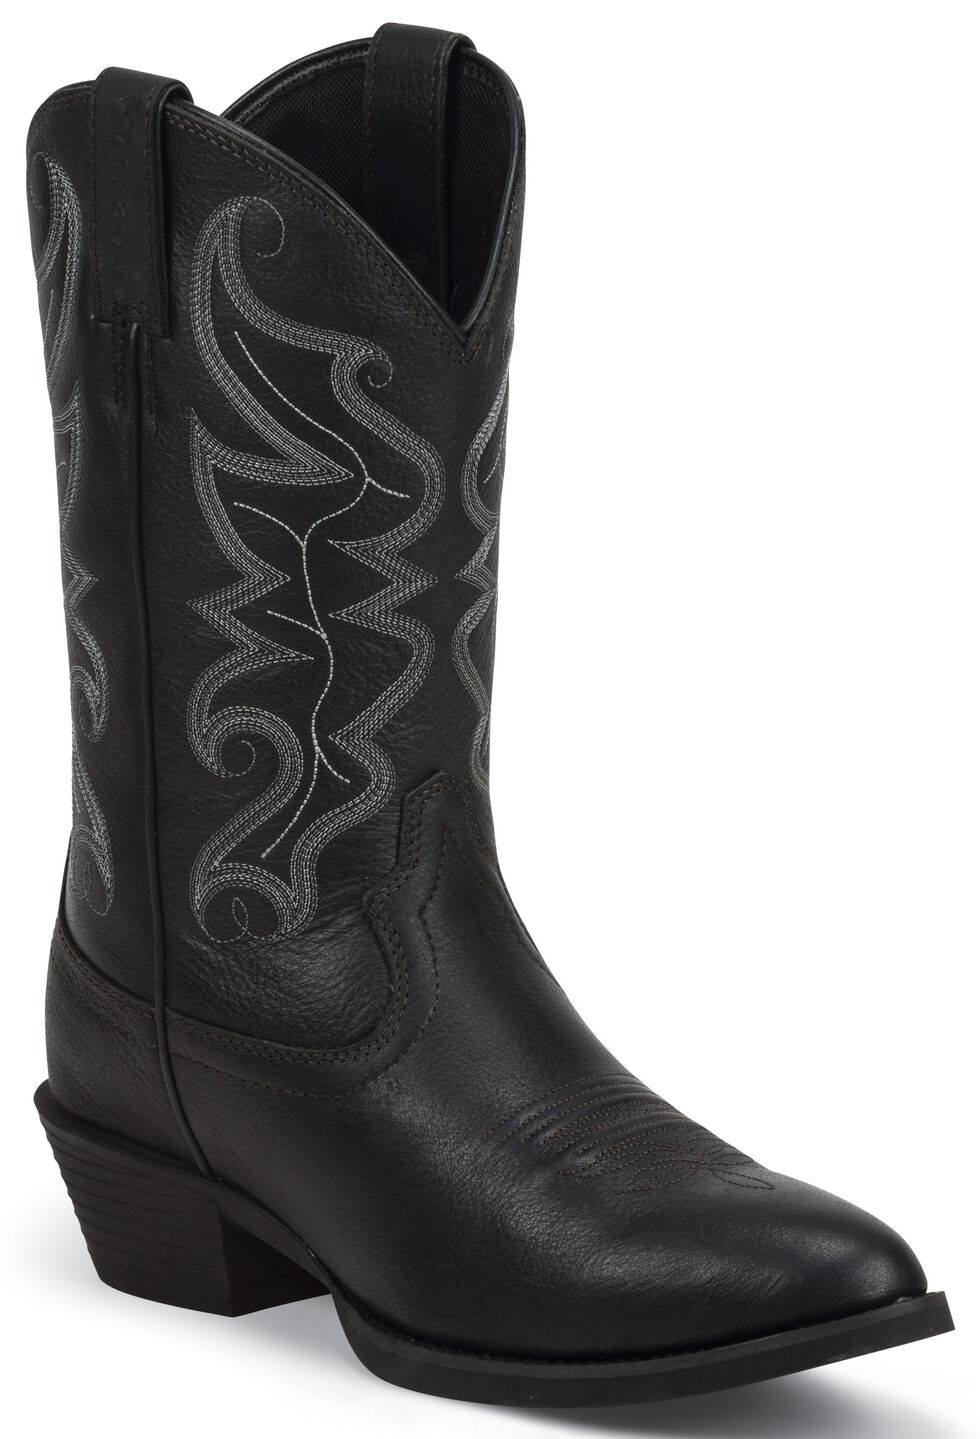 Justin Men's All Star Black Western Boots - Round Toe , Black, hi-res